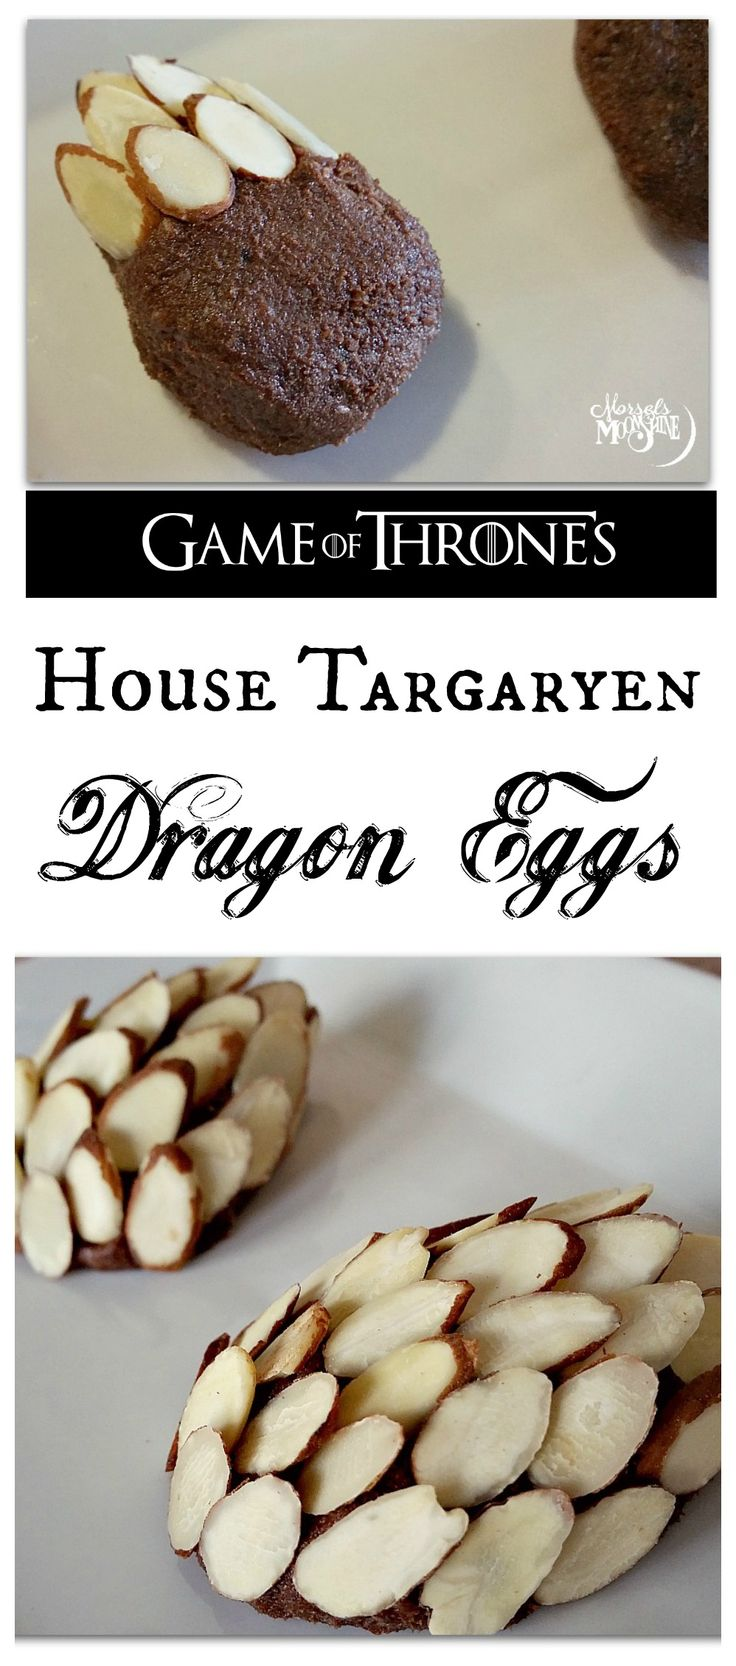 Game of Thrones Premiere Party Recipe: House Targaryen Dragon Eggs (aka Fudgy Chocolate Truffles)